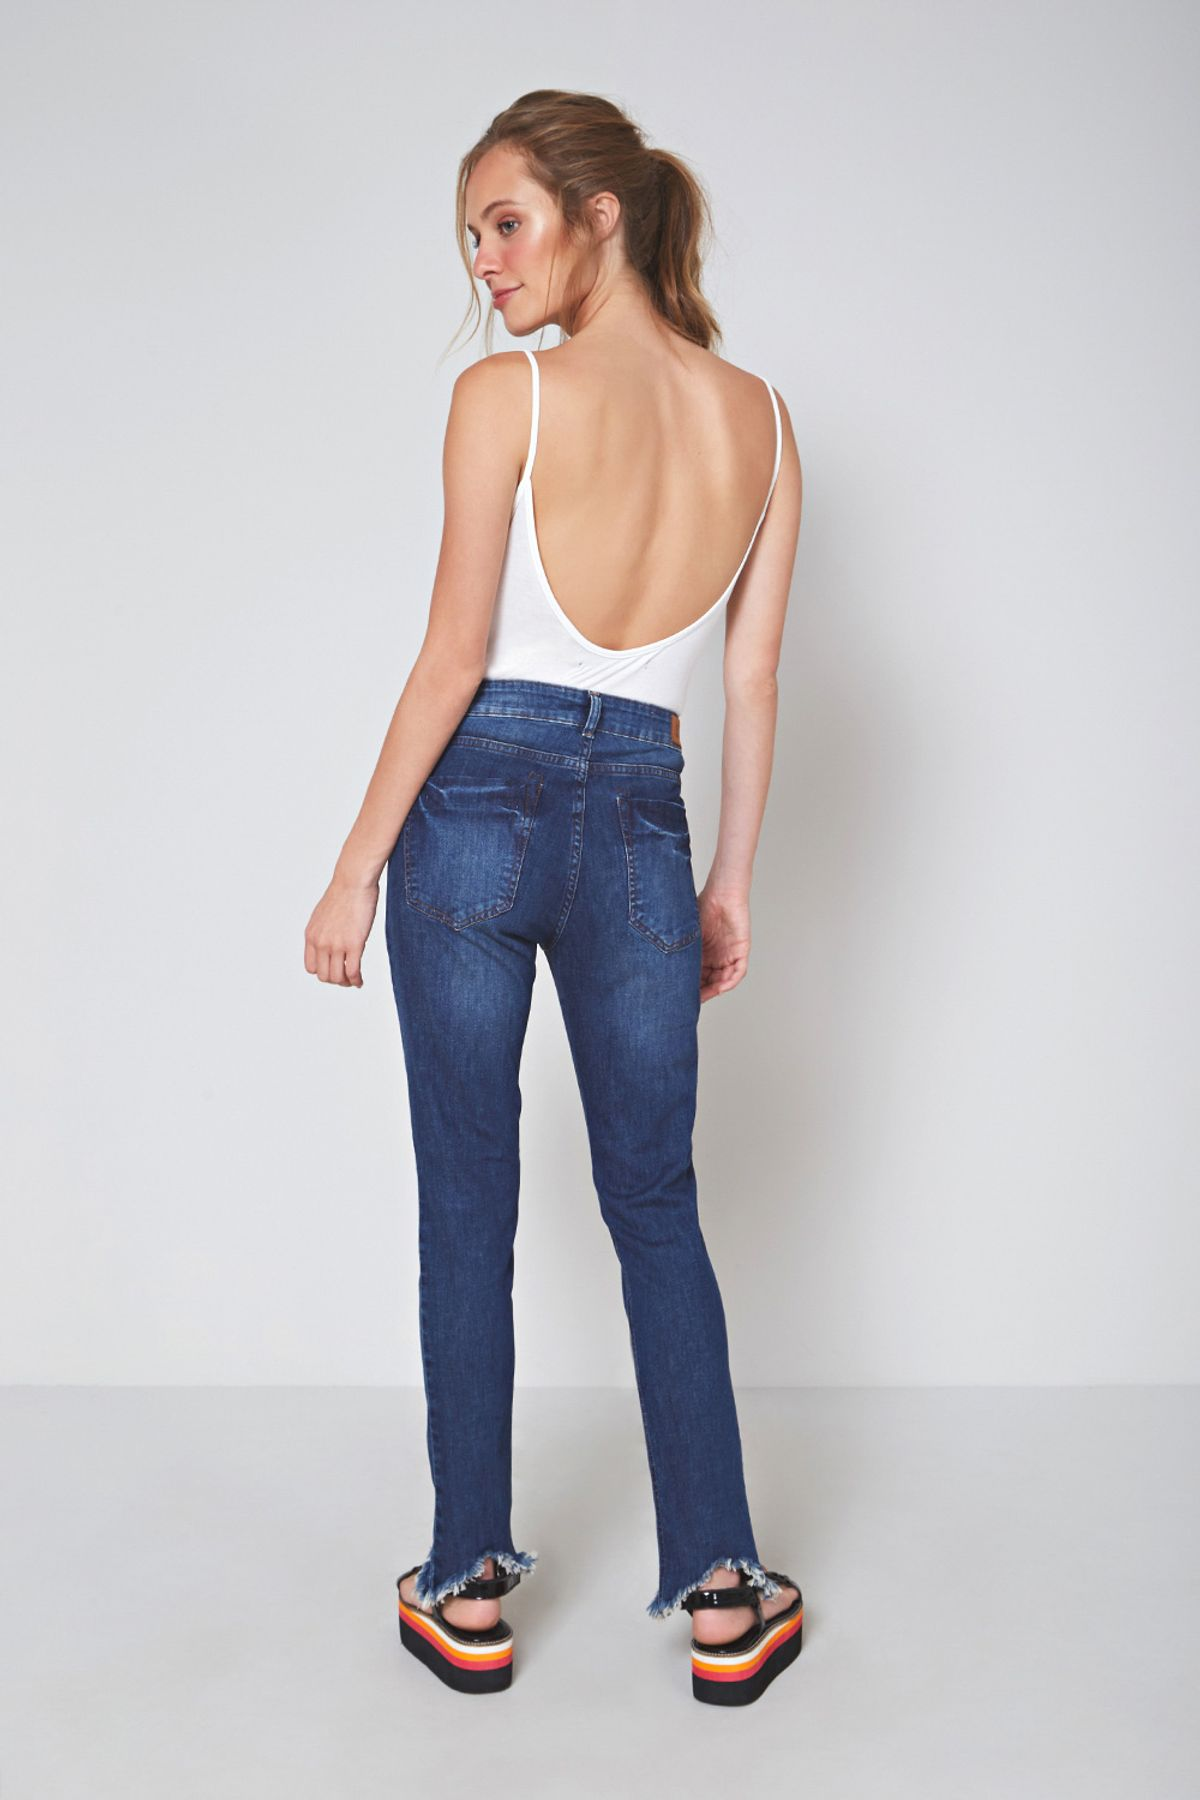 CALCA-JEANS-BARDOT-DIRTY-PERNA-020210170057-OH-BOY